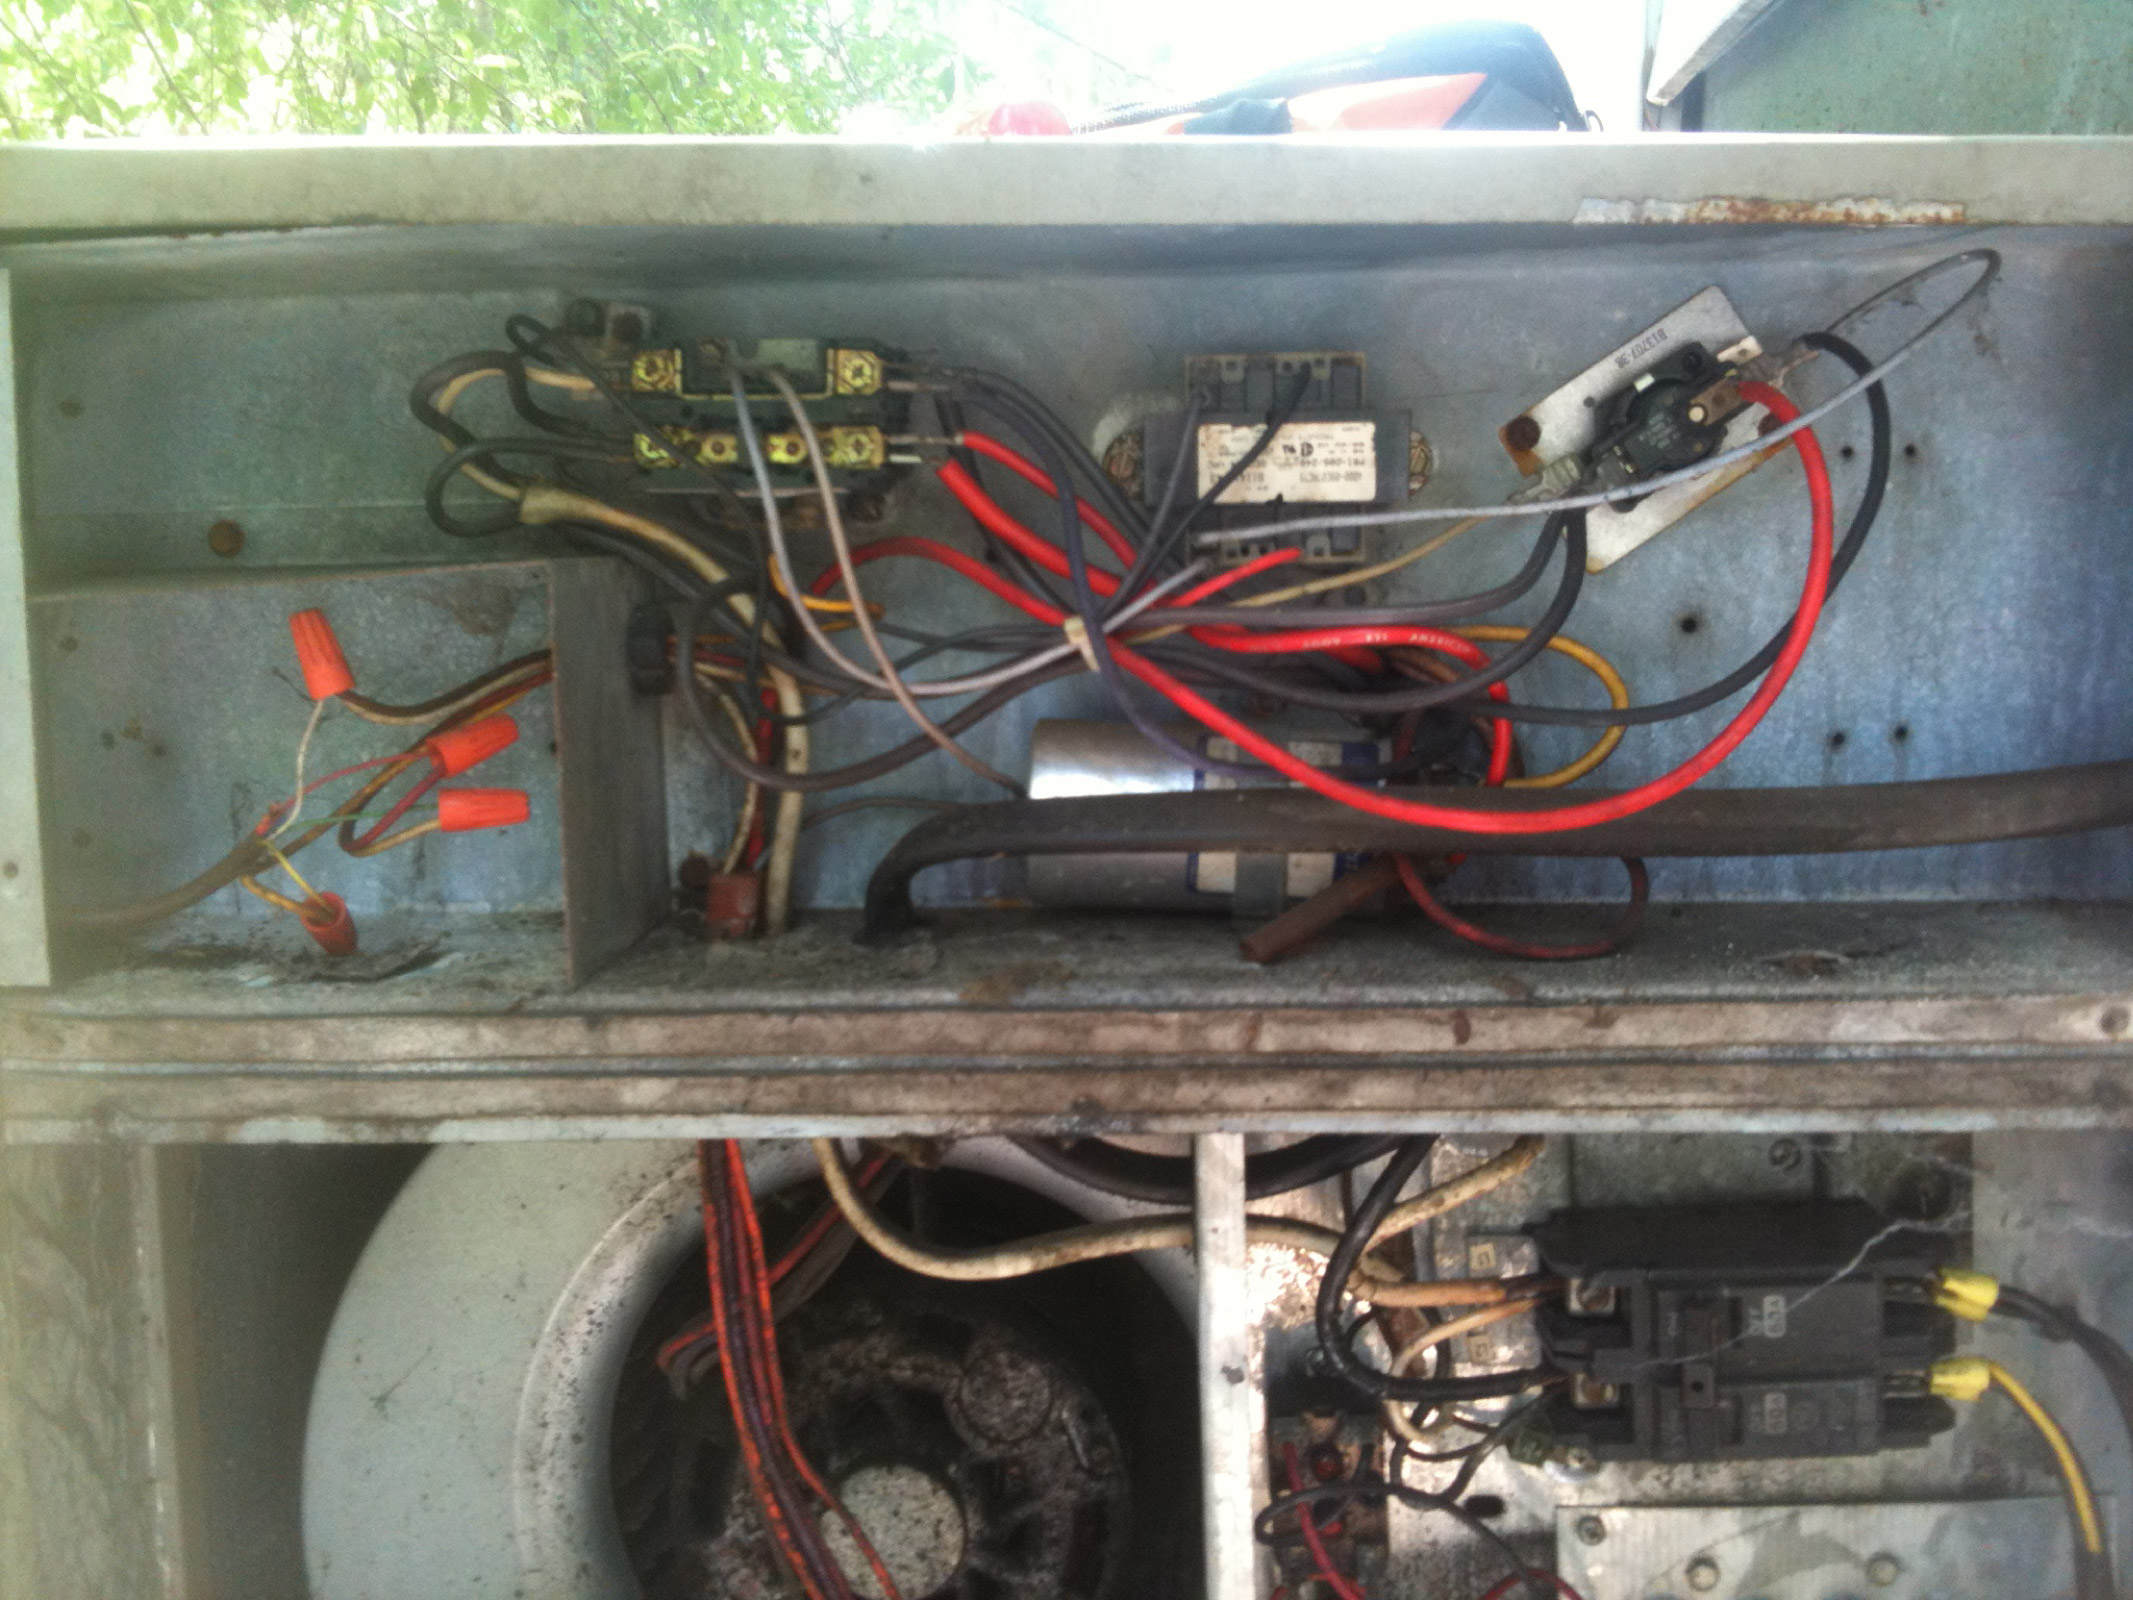 I Have A Goodman Pc024 1brev E Ser Xxxxxxxxx It Has Suddenly Furnace Wiring Diagram For Gas Units Full Size Image